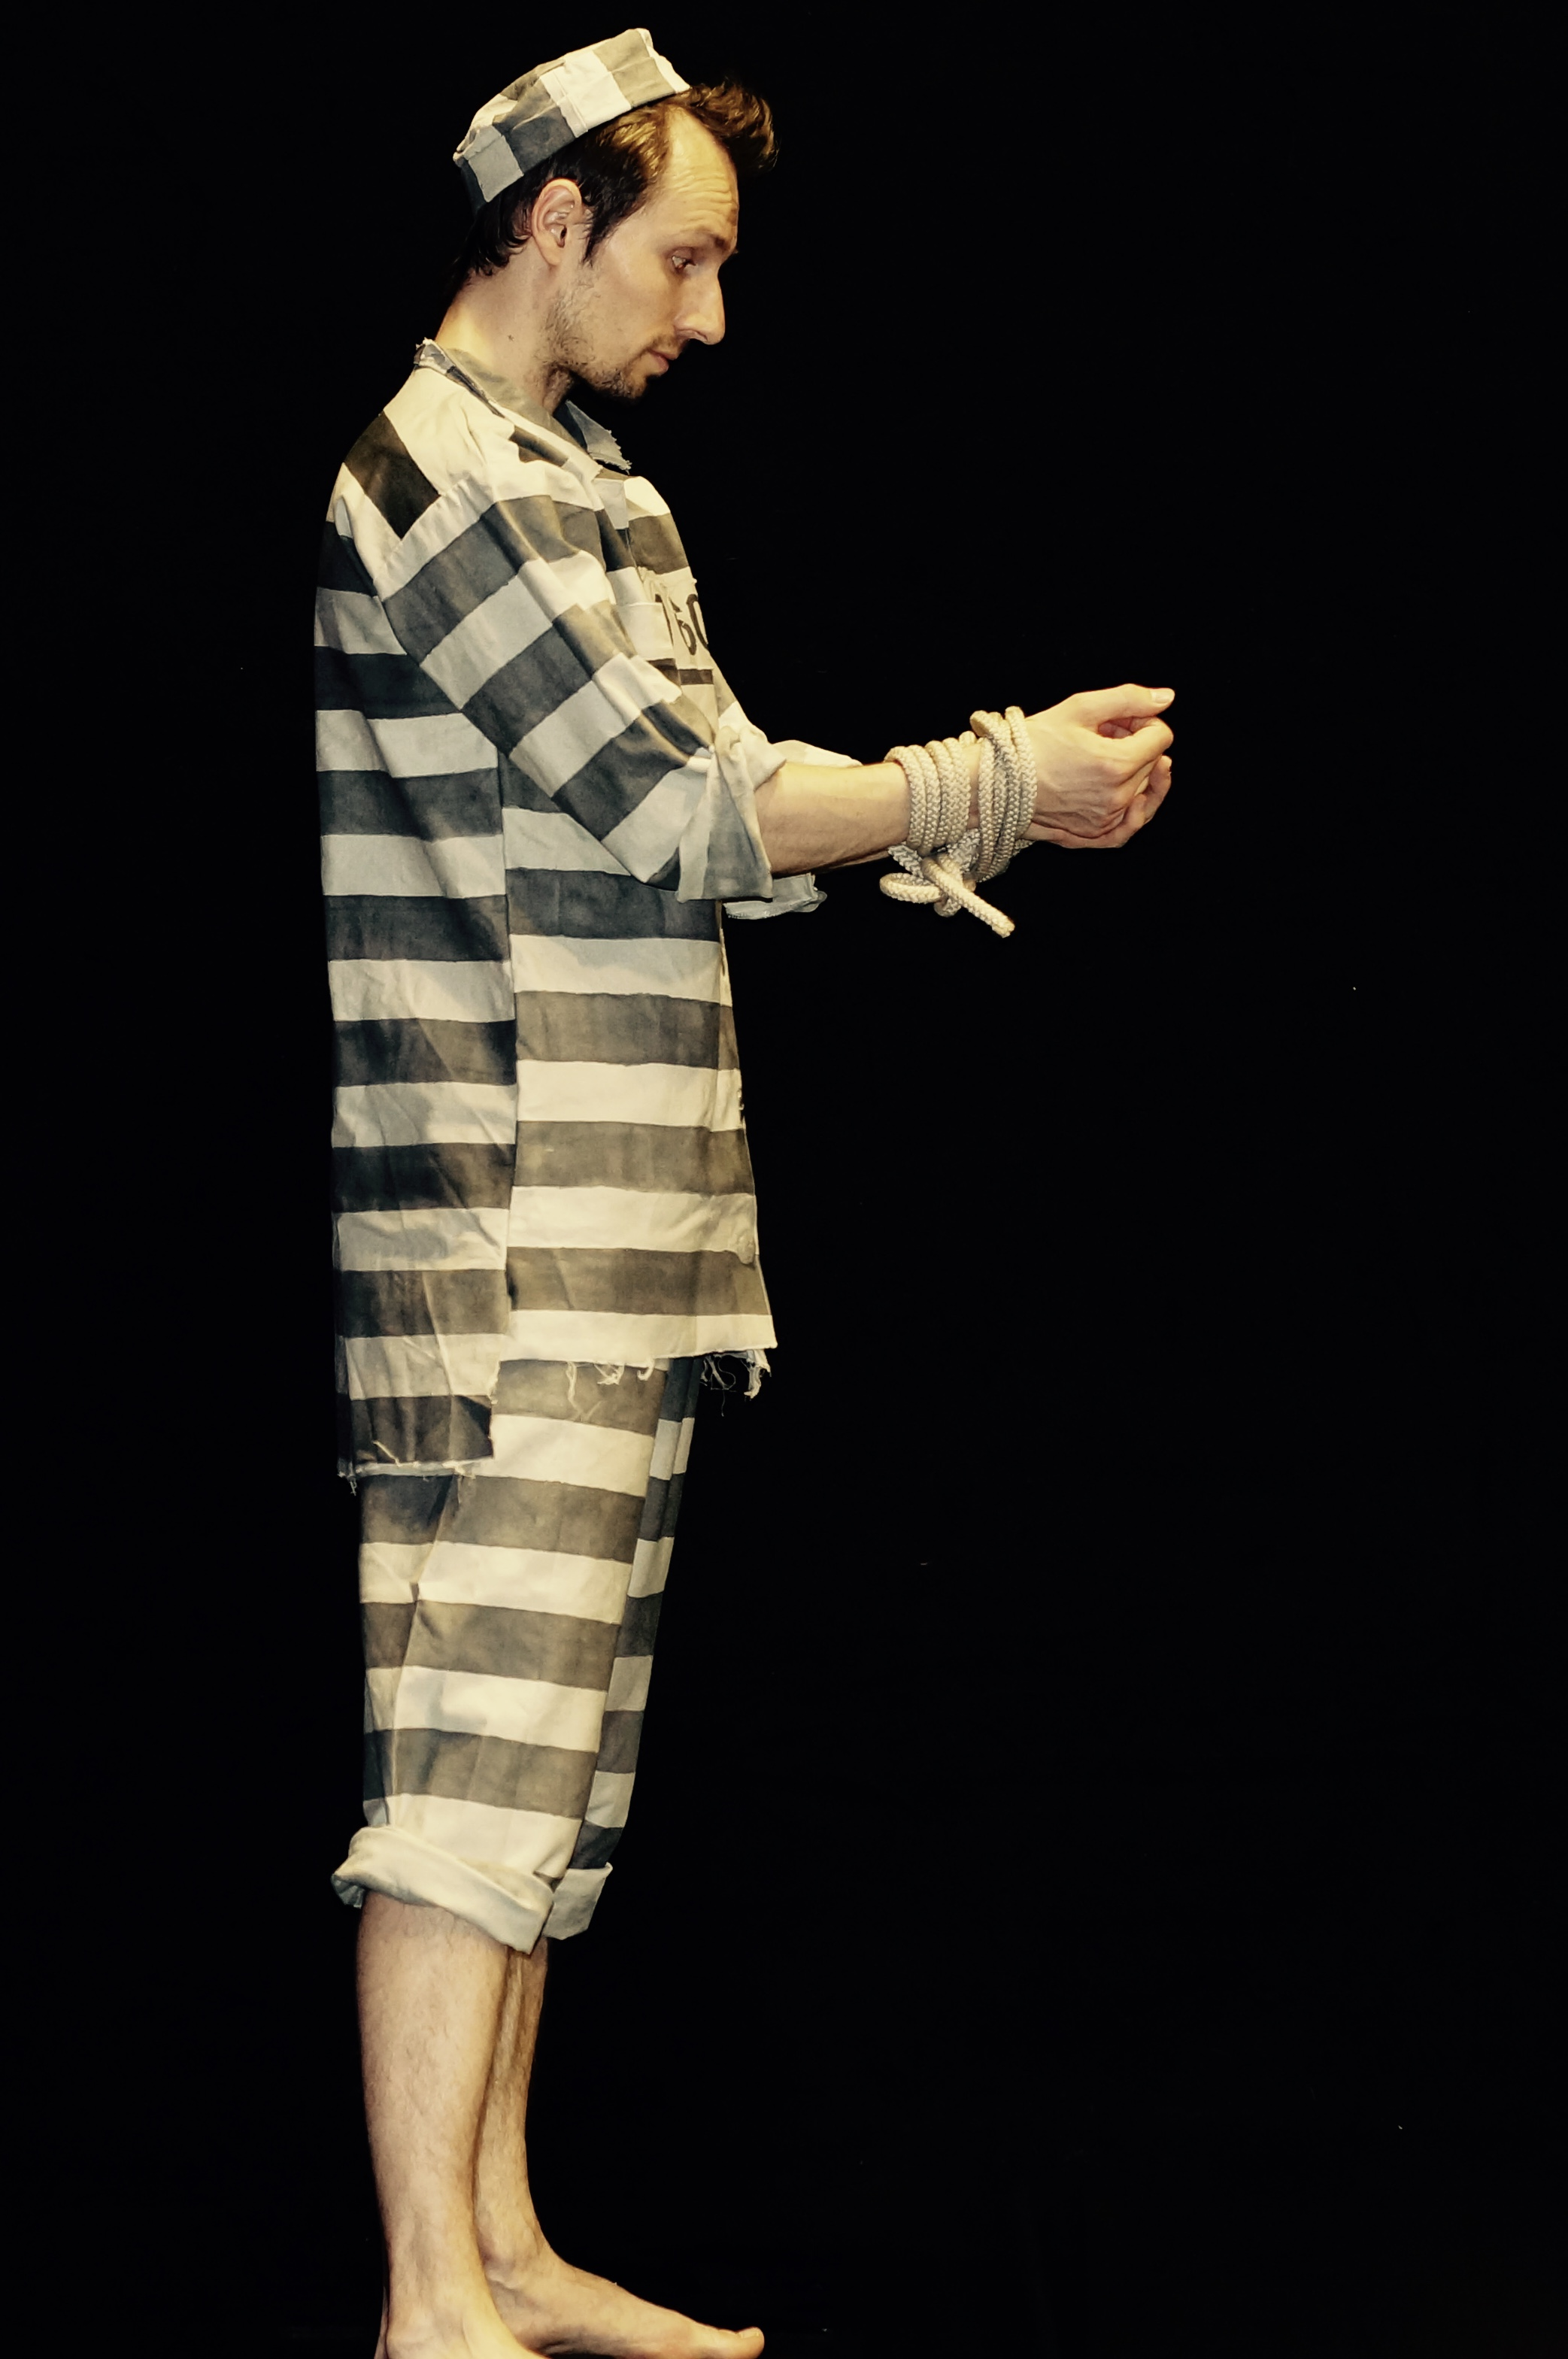 Prisoner juggling 1